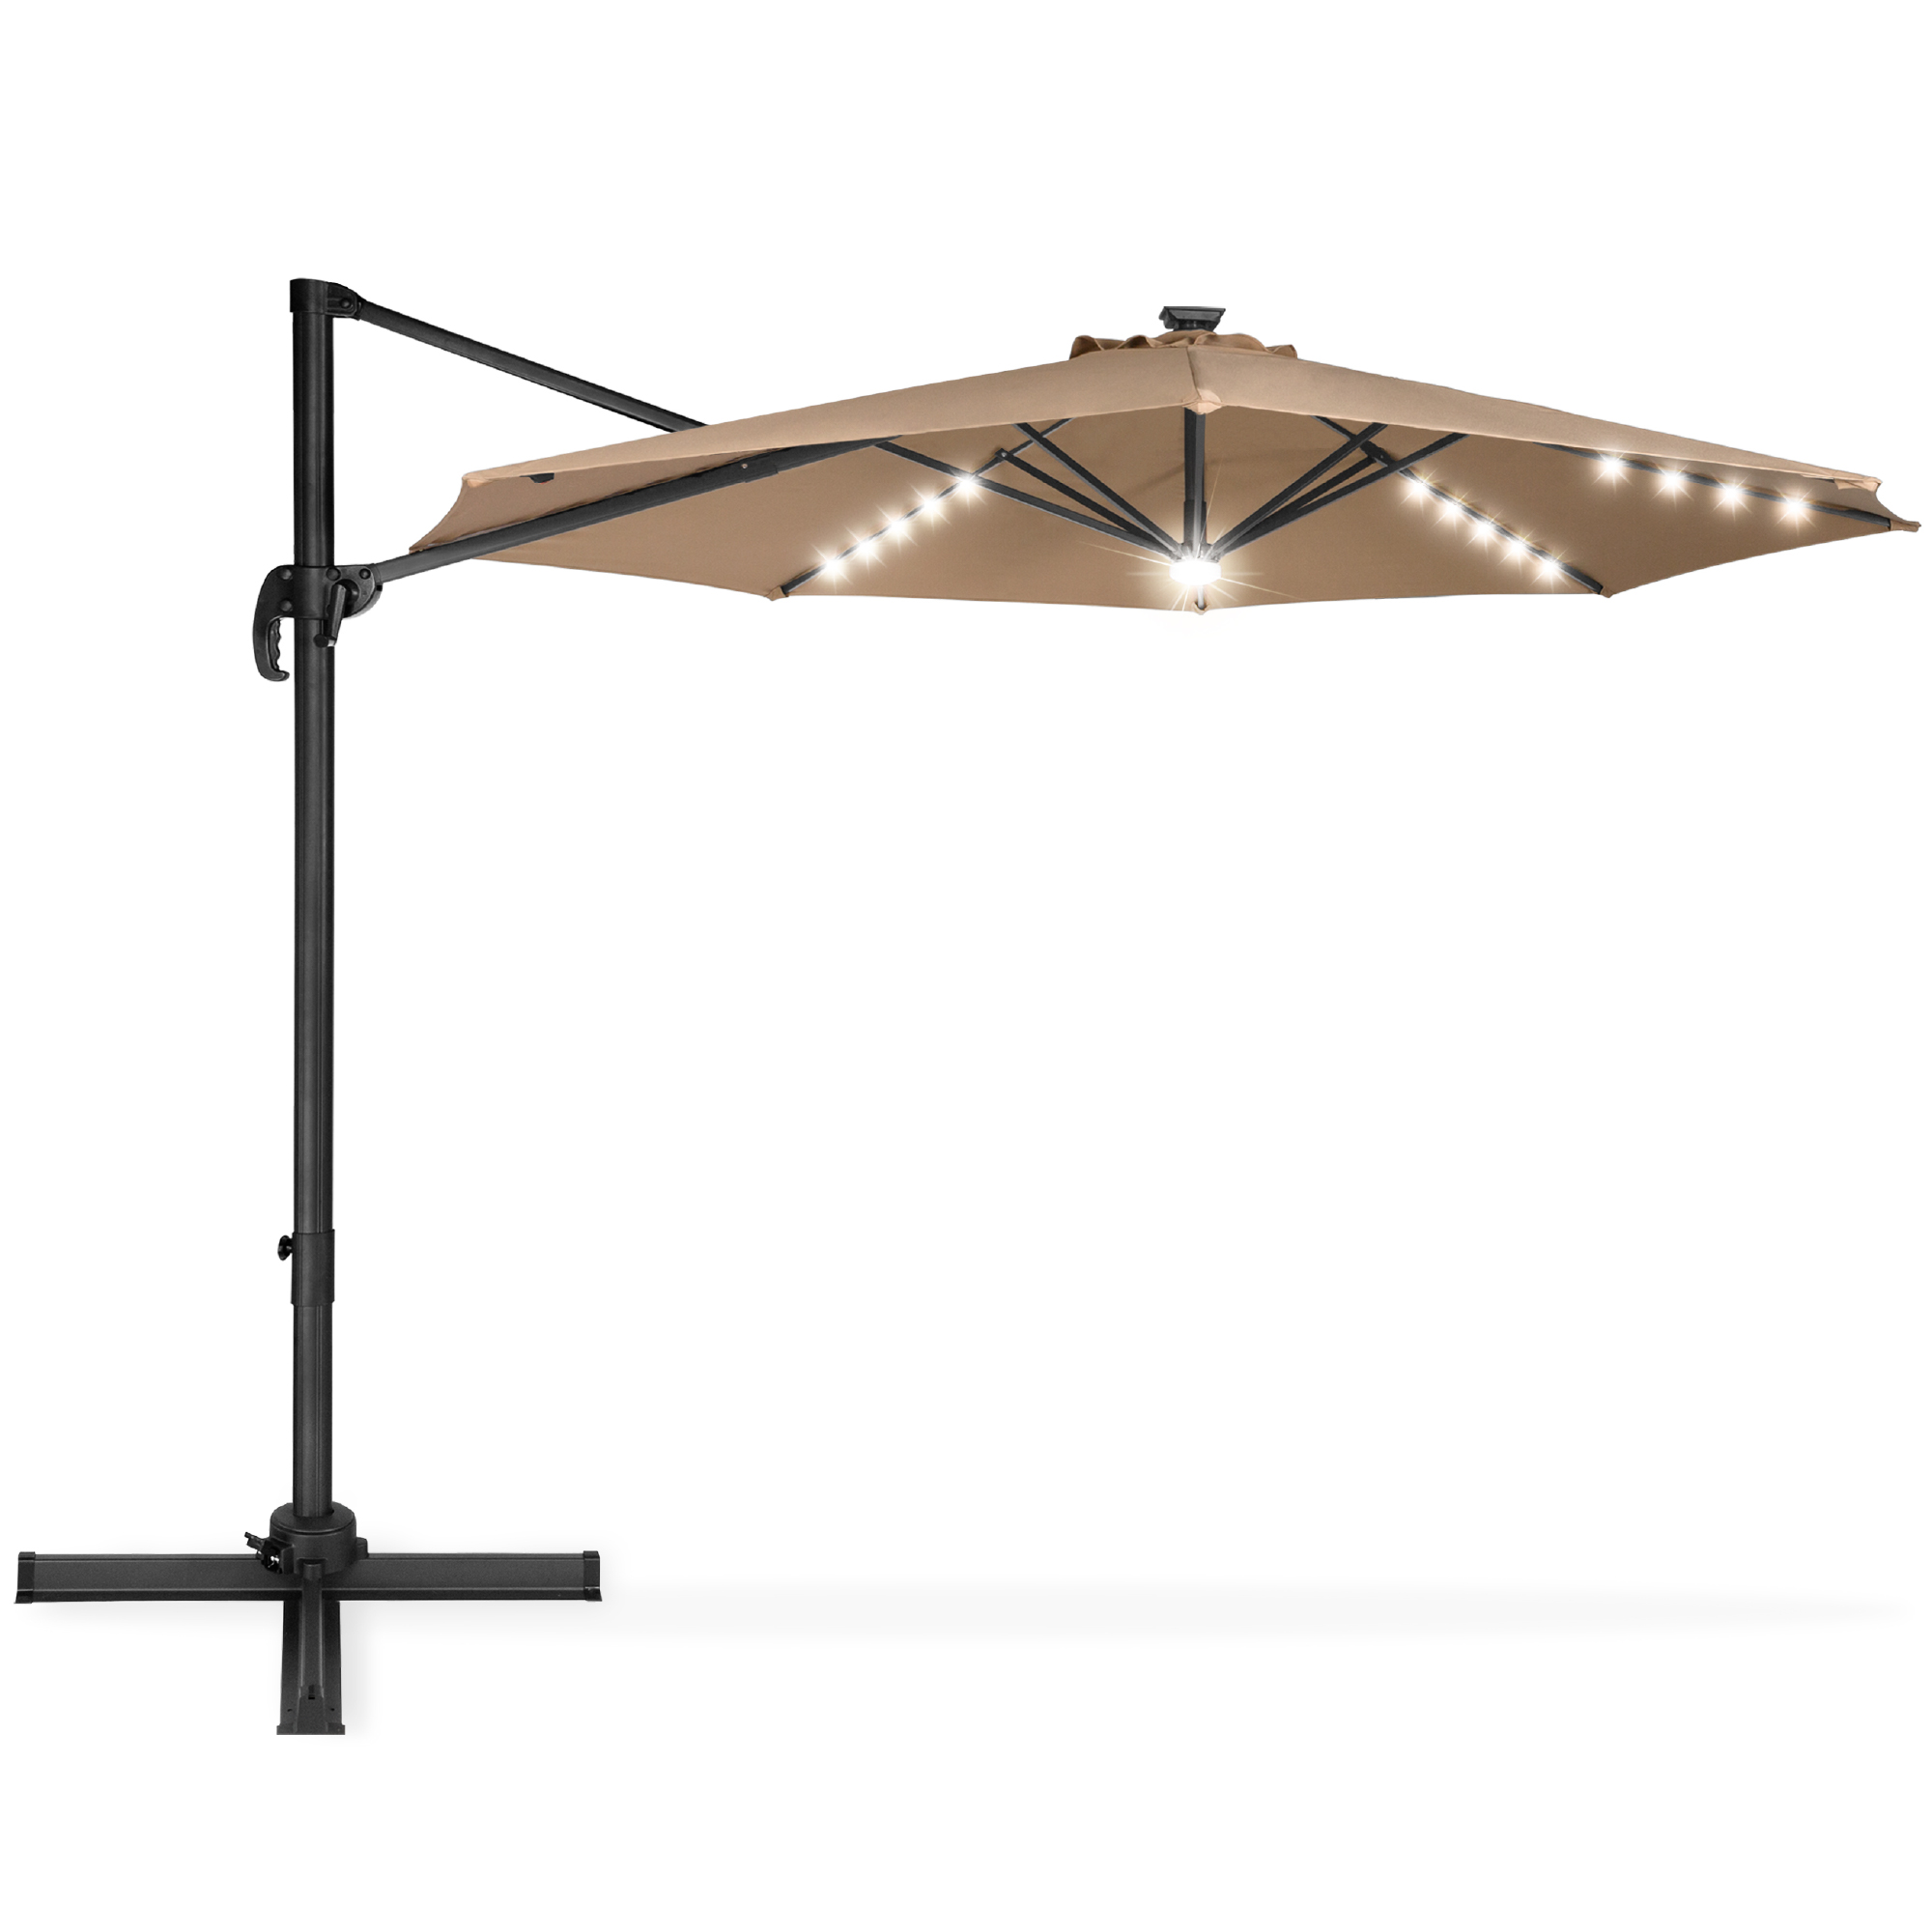 best choice products 10ft 360 degree led cantilever offset hanging market patio umbrella w easy tilt tan